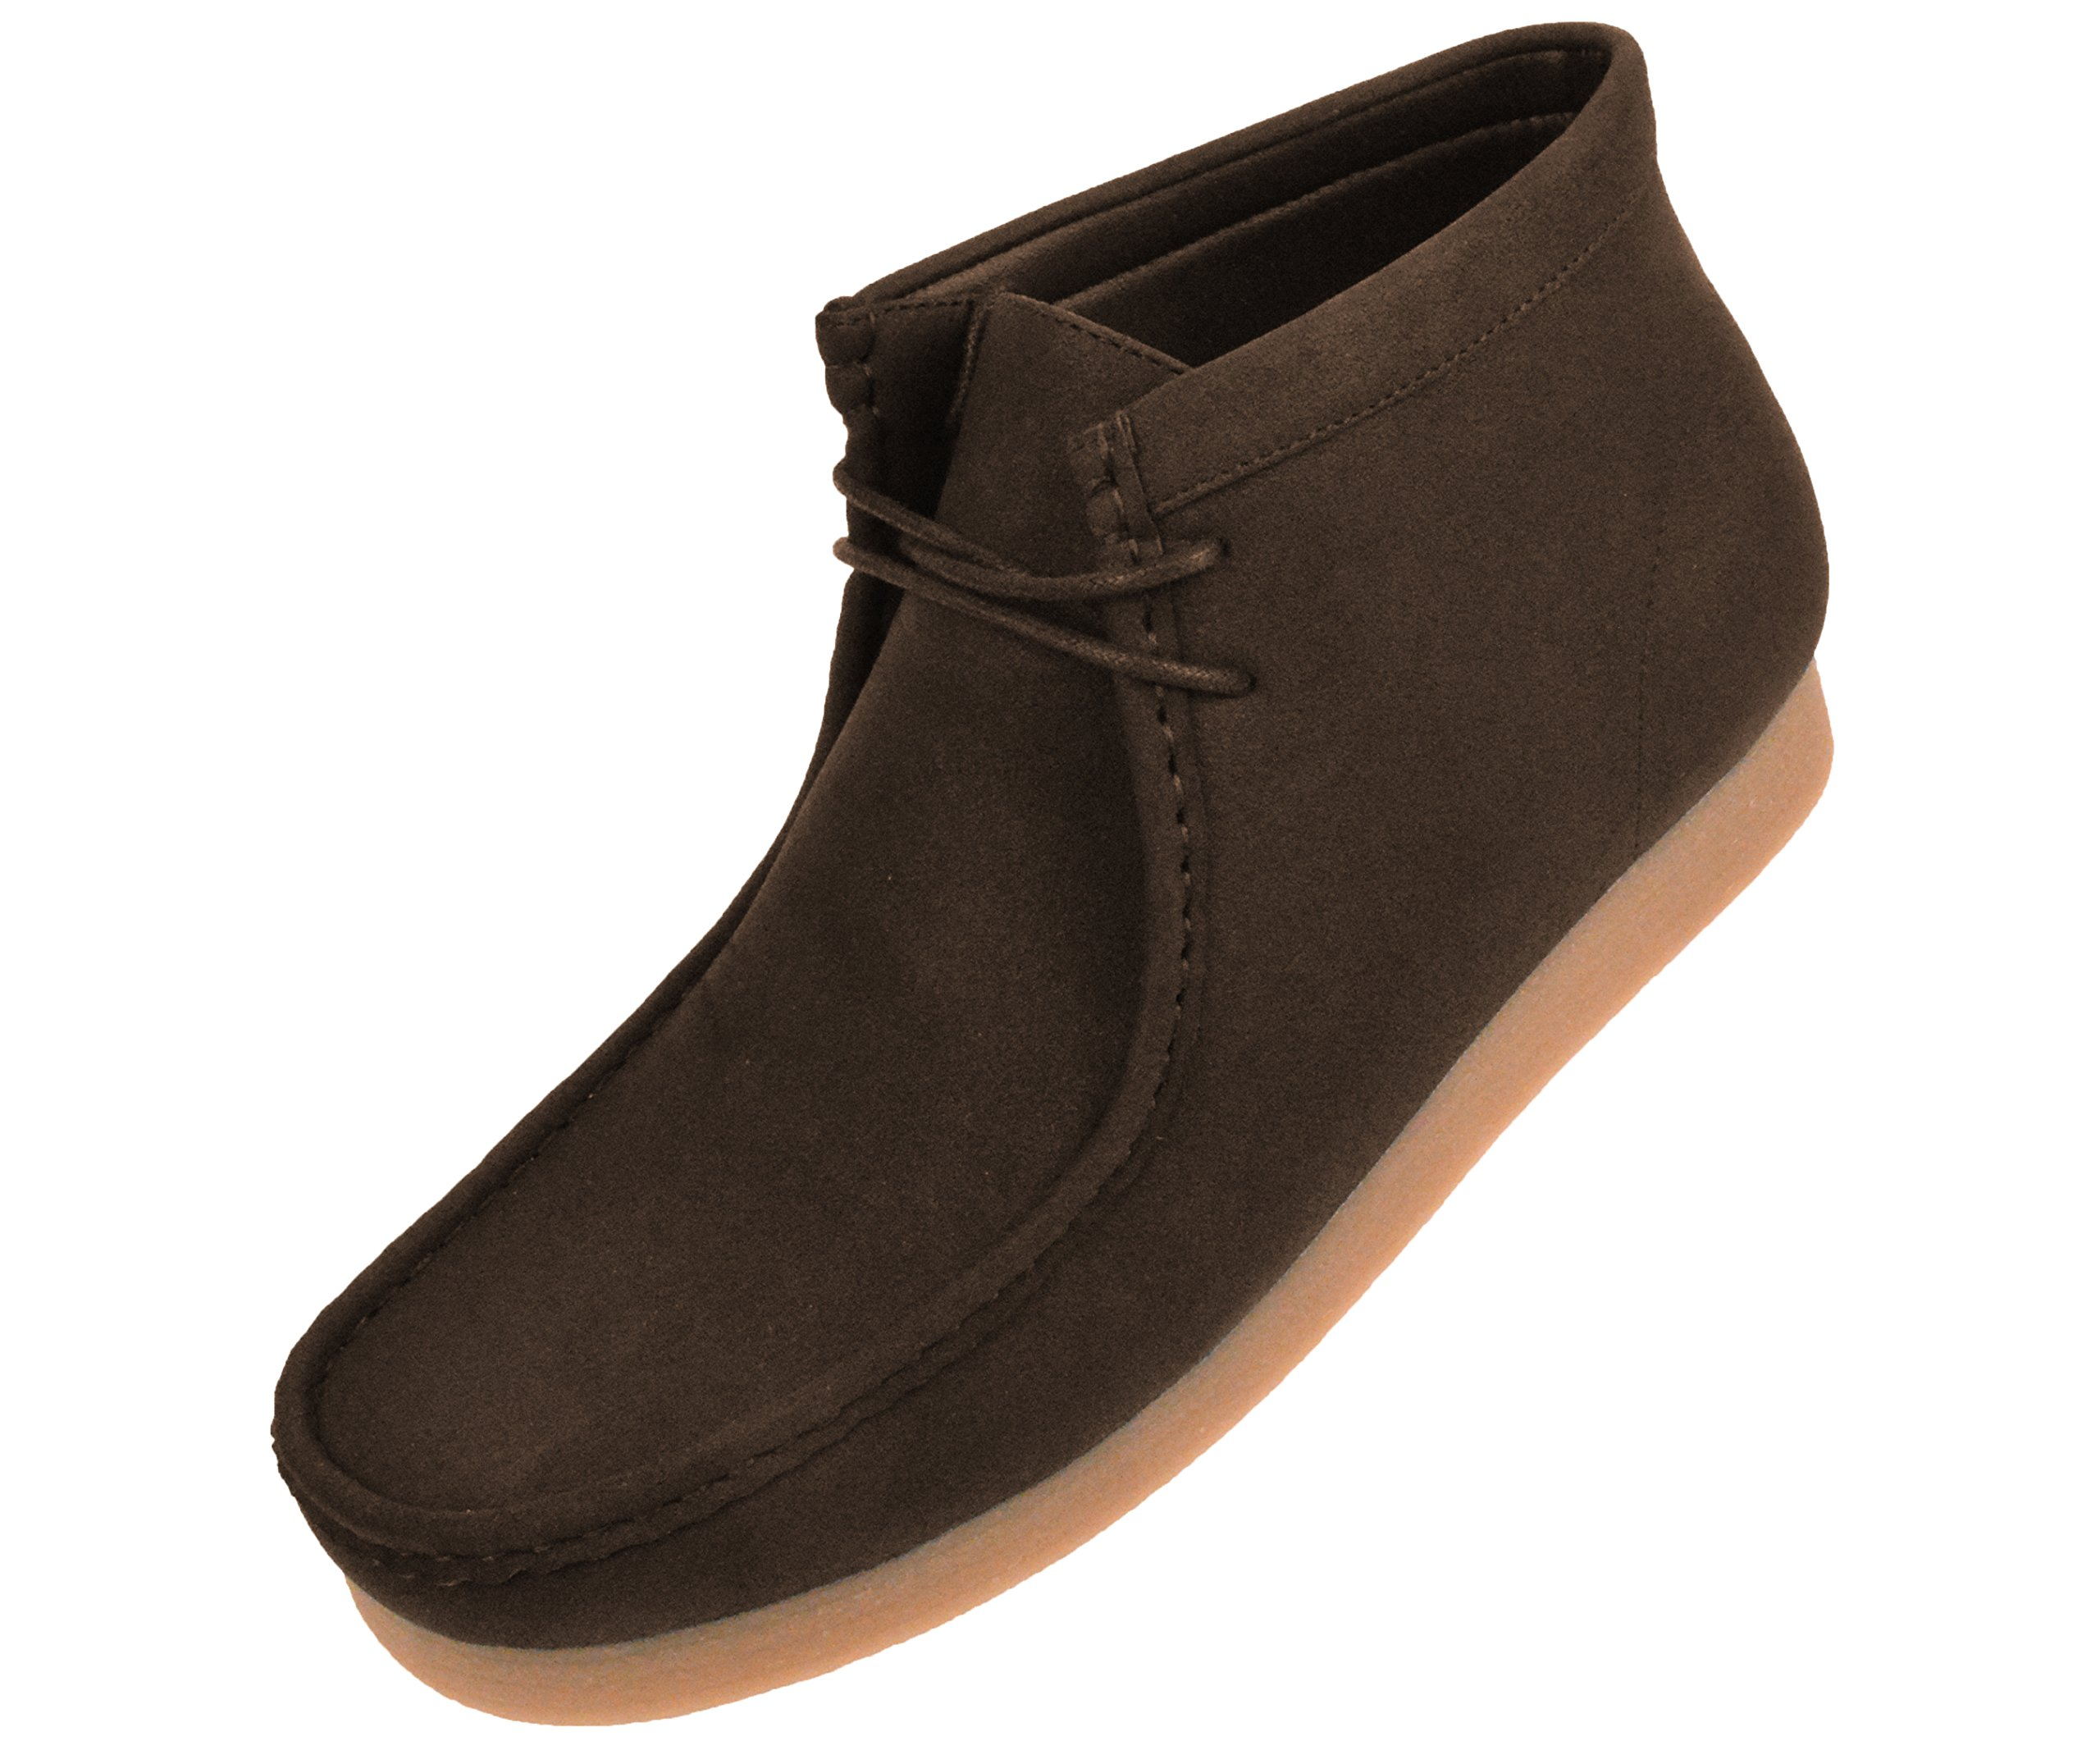 Amali Men's Faux Suede/Leather High and Low Top Lace-up Casual Boots with Crepe Rubber Like Sole